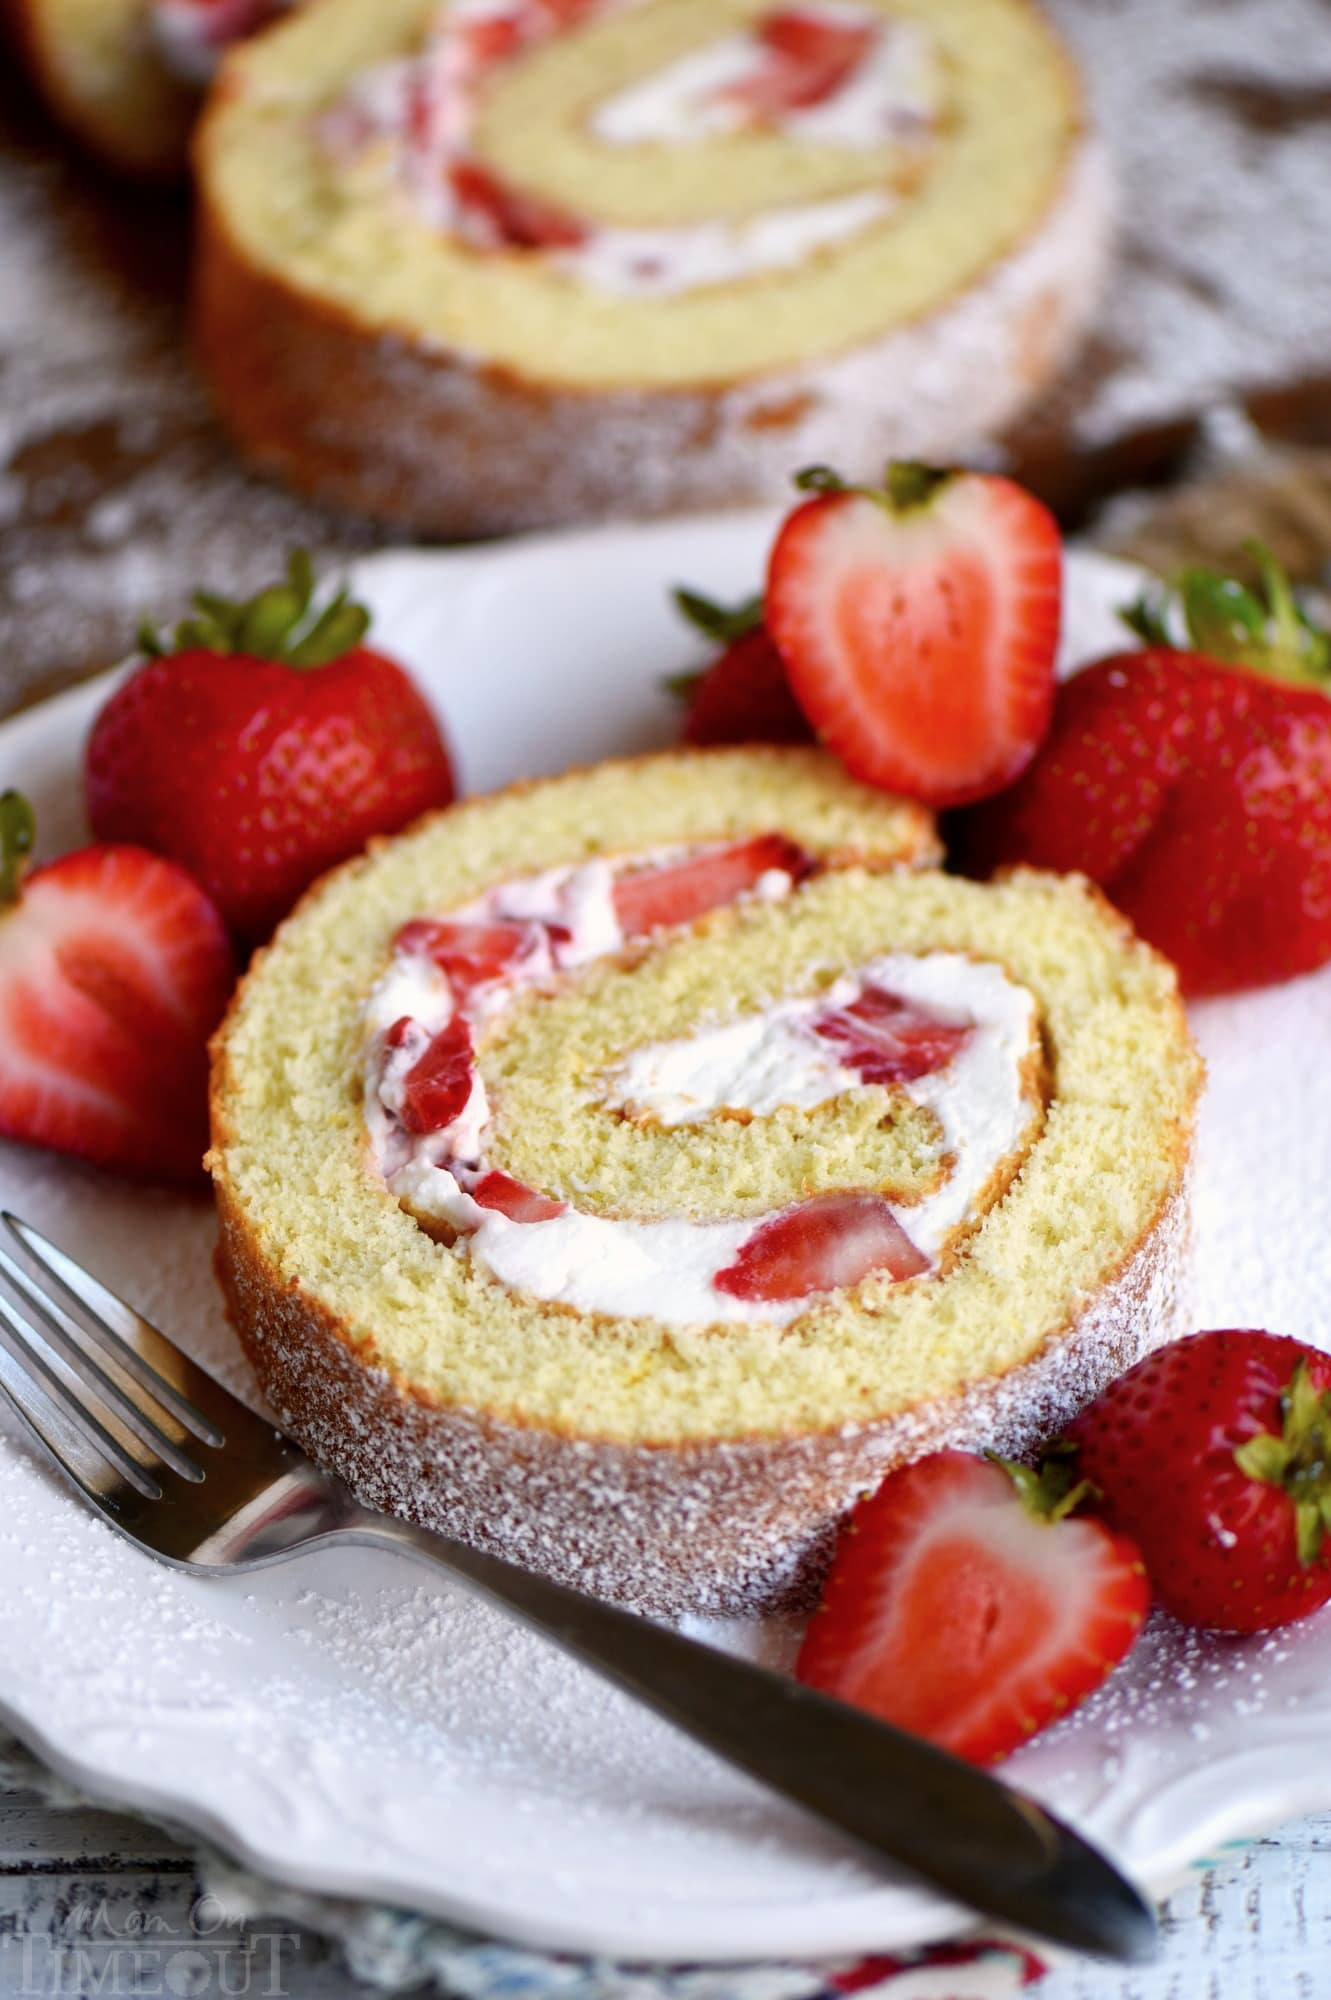 strawberry-shortcake-roulade-slice-on-plate